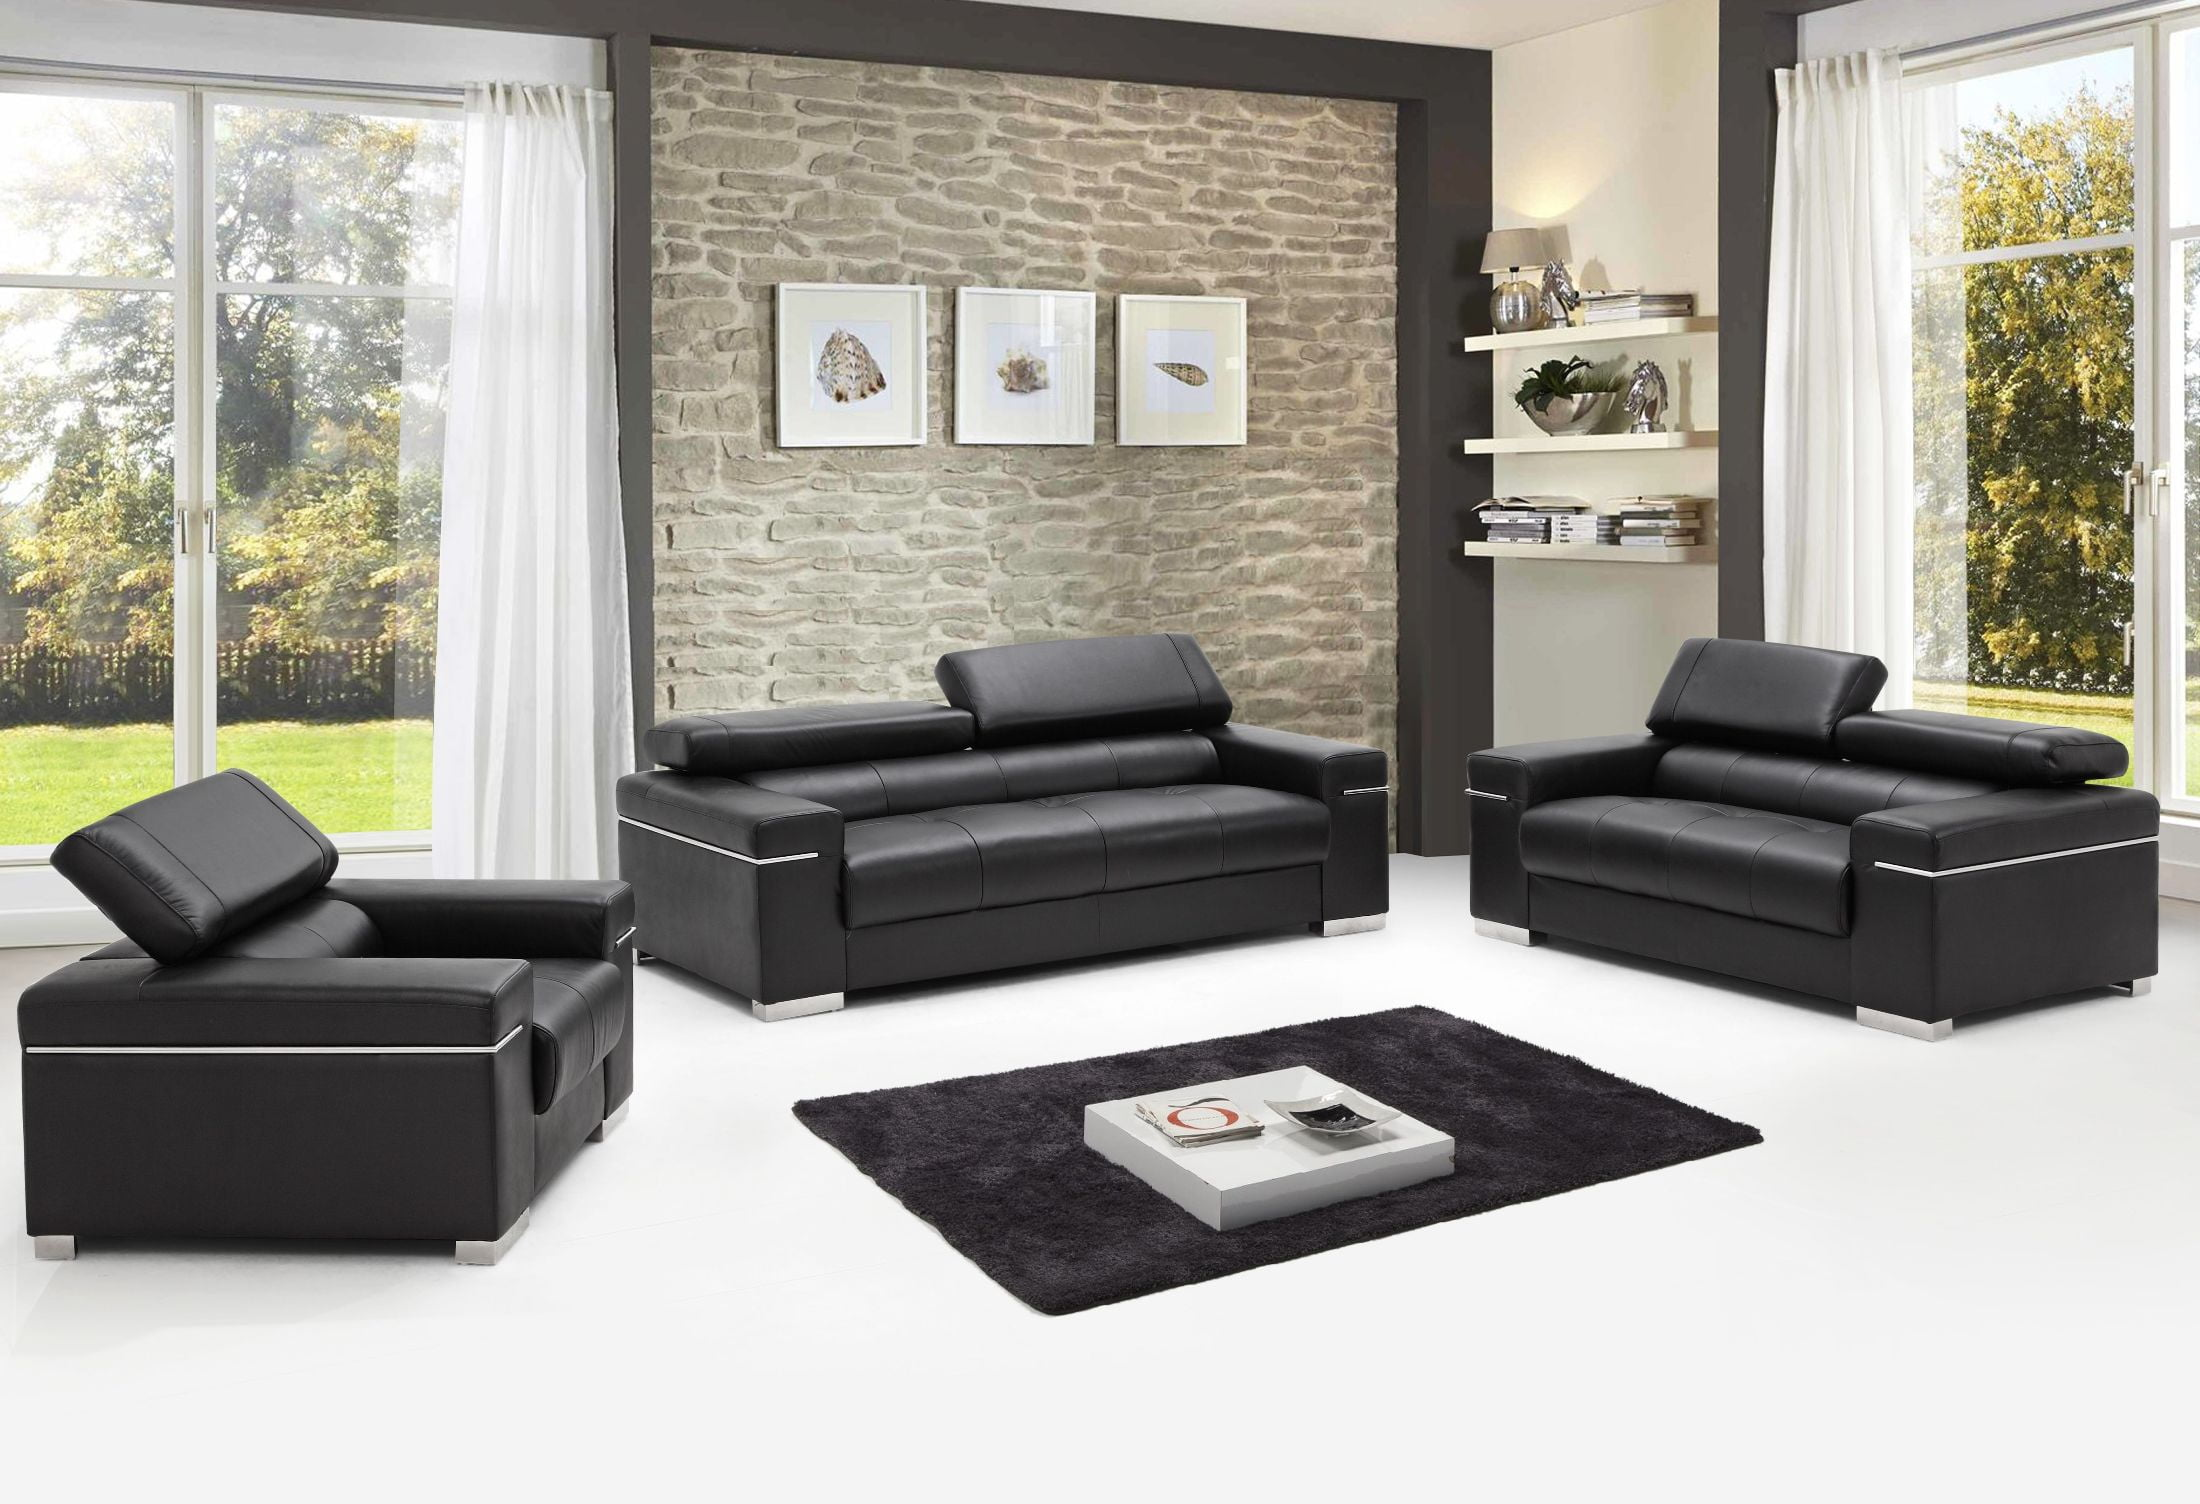 Soho Black Leather Living Room Set